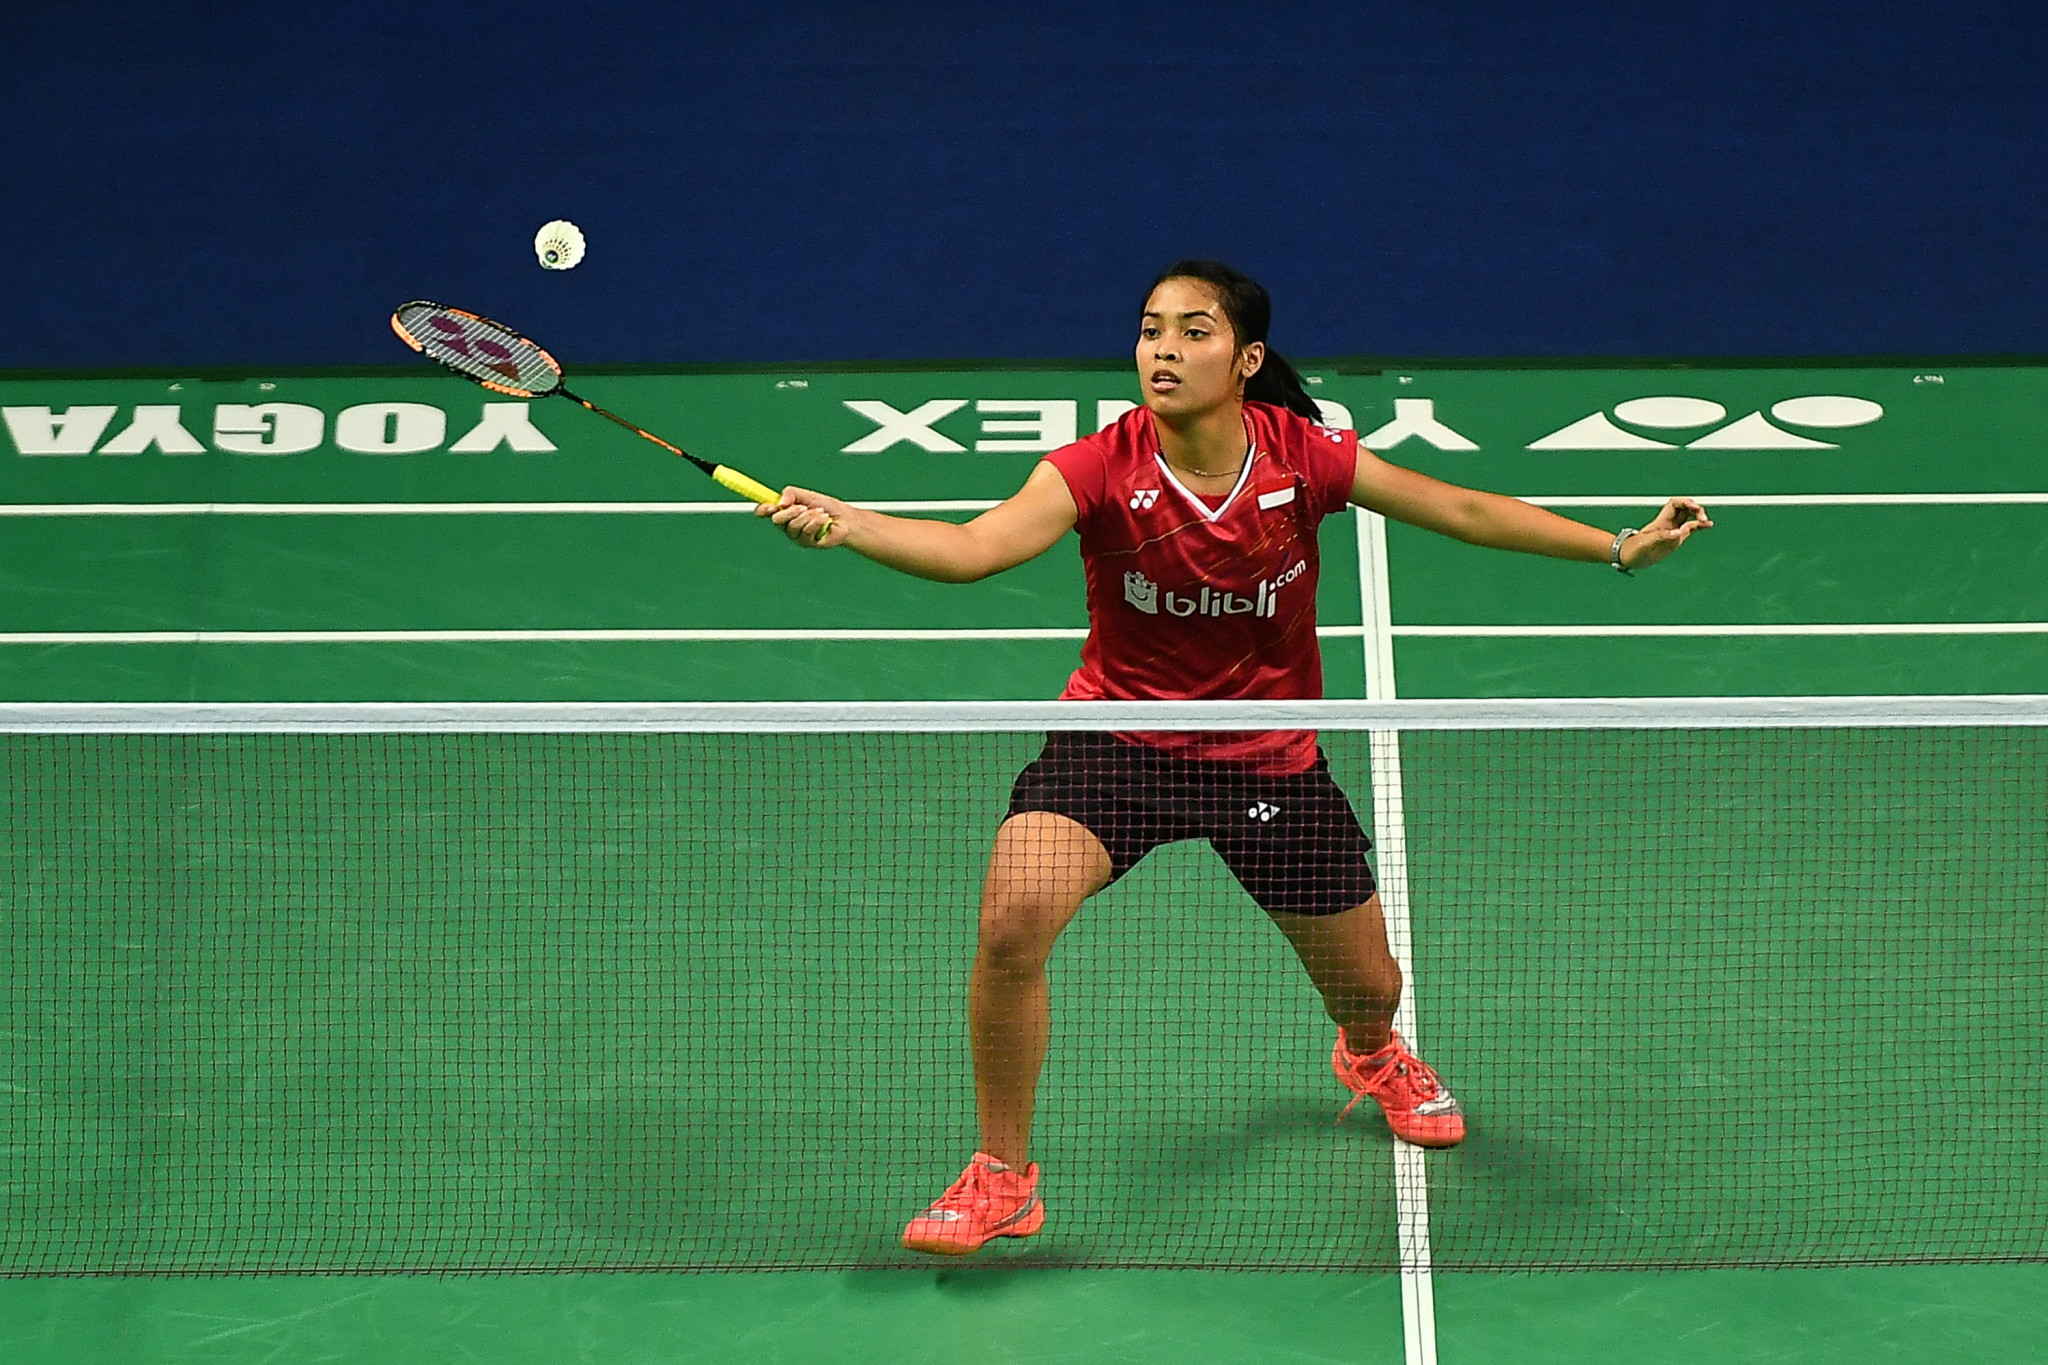 Home favourite through to women's singles final at Badminton World Junior Championships